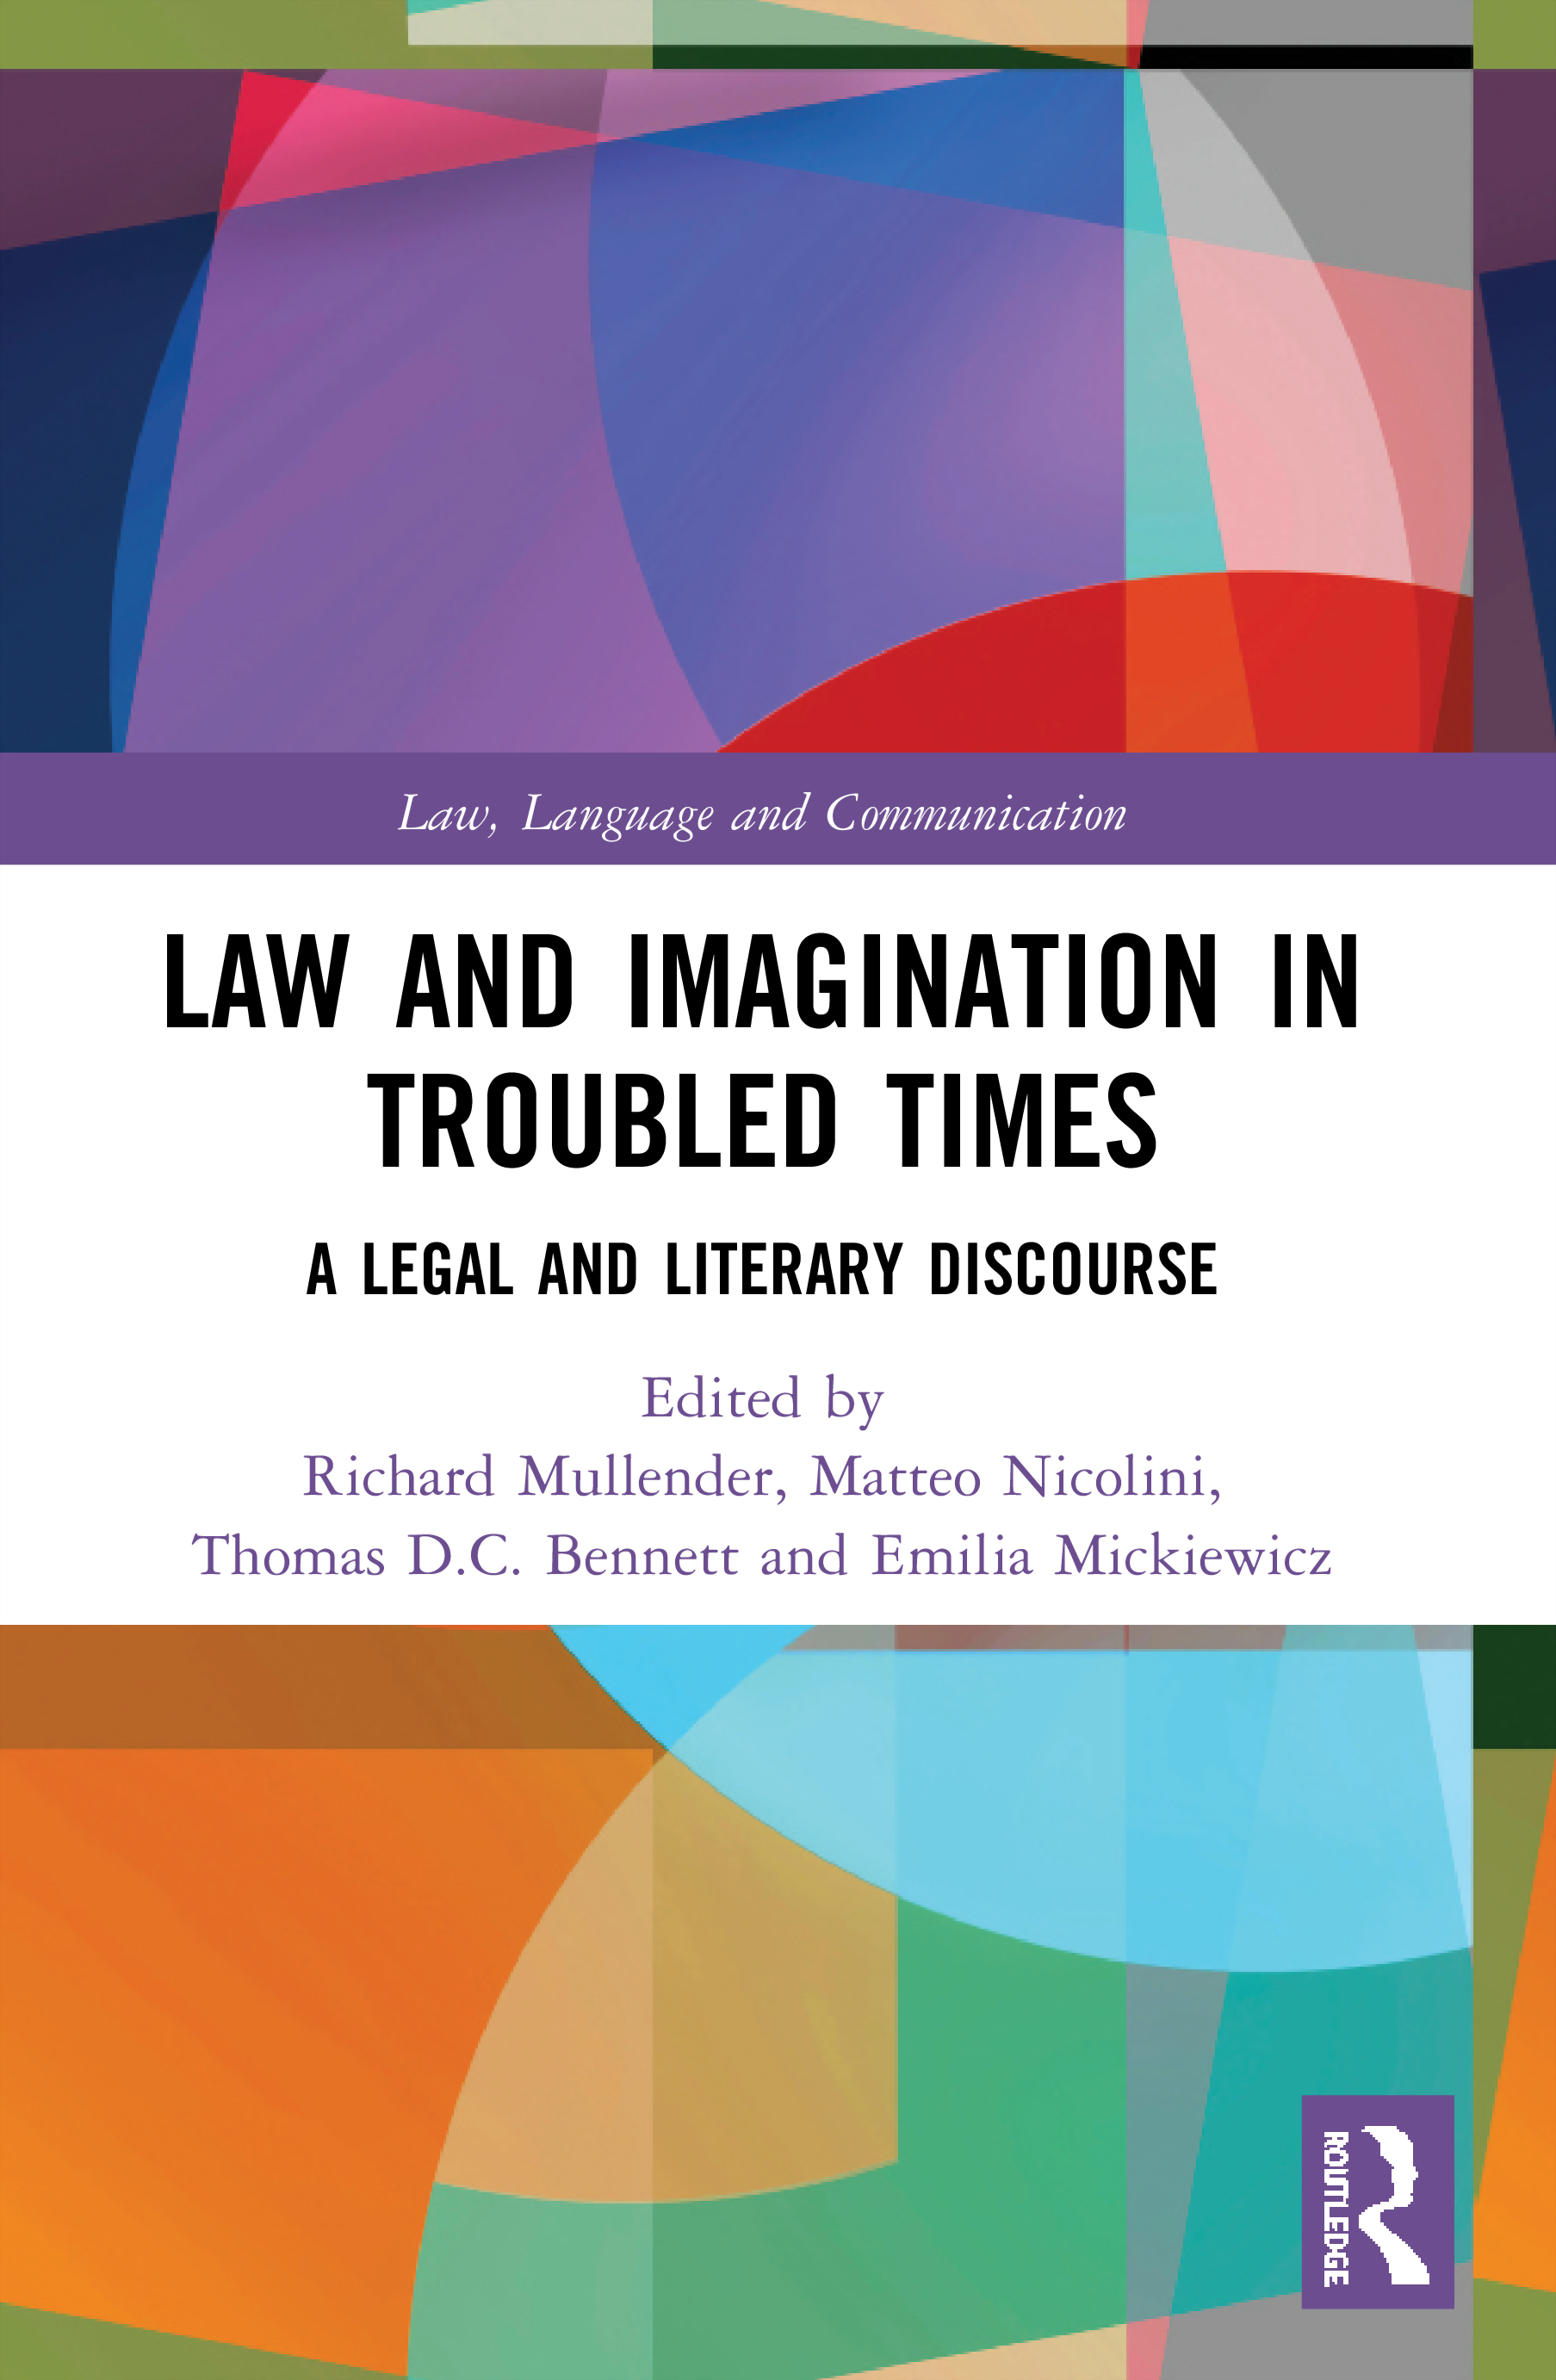 Law and Imagination in Troubled Times